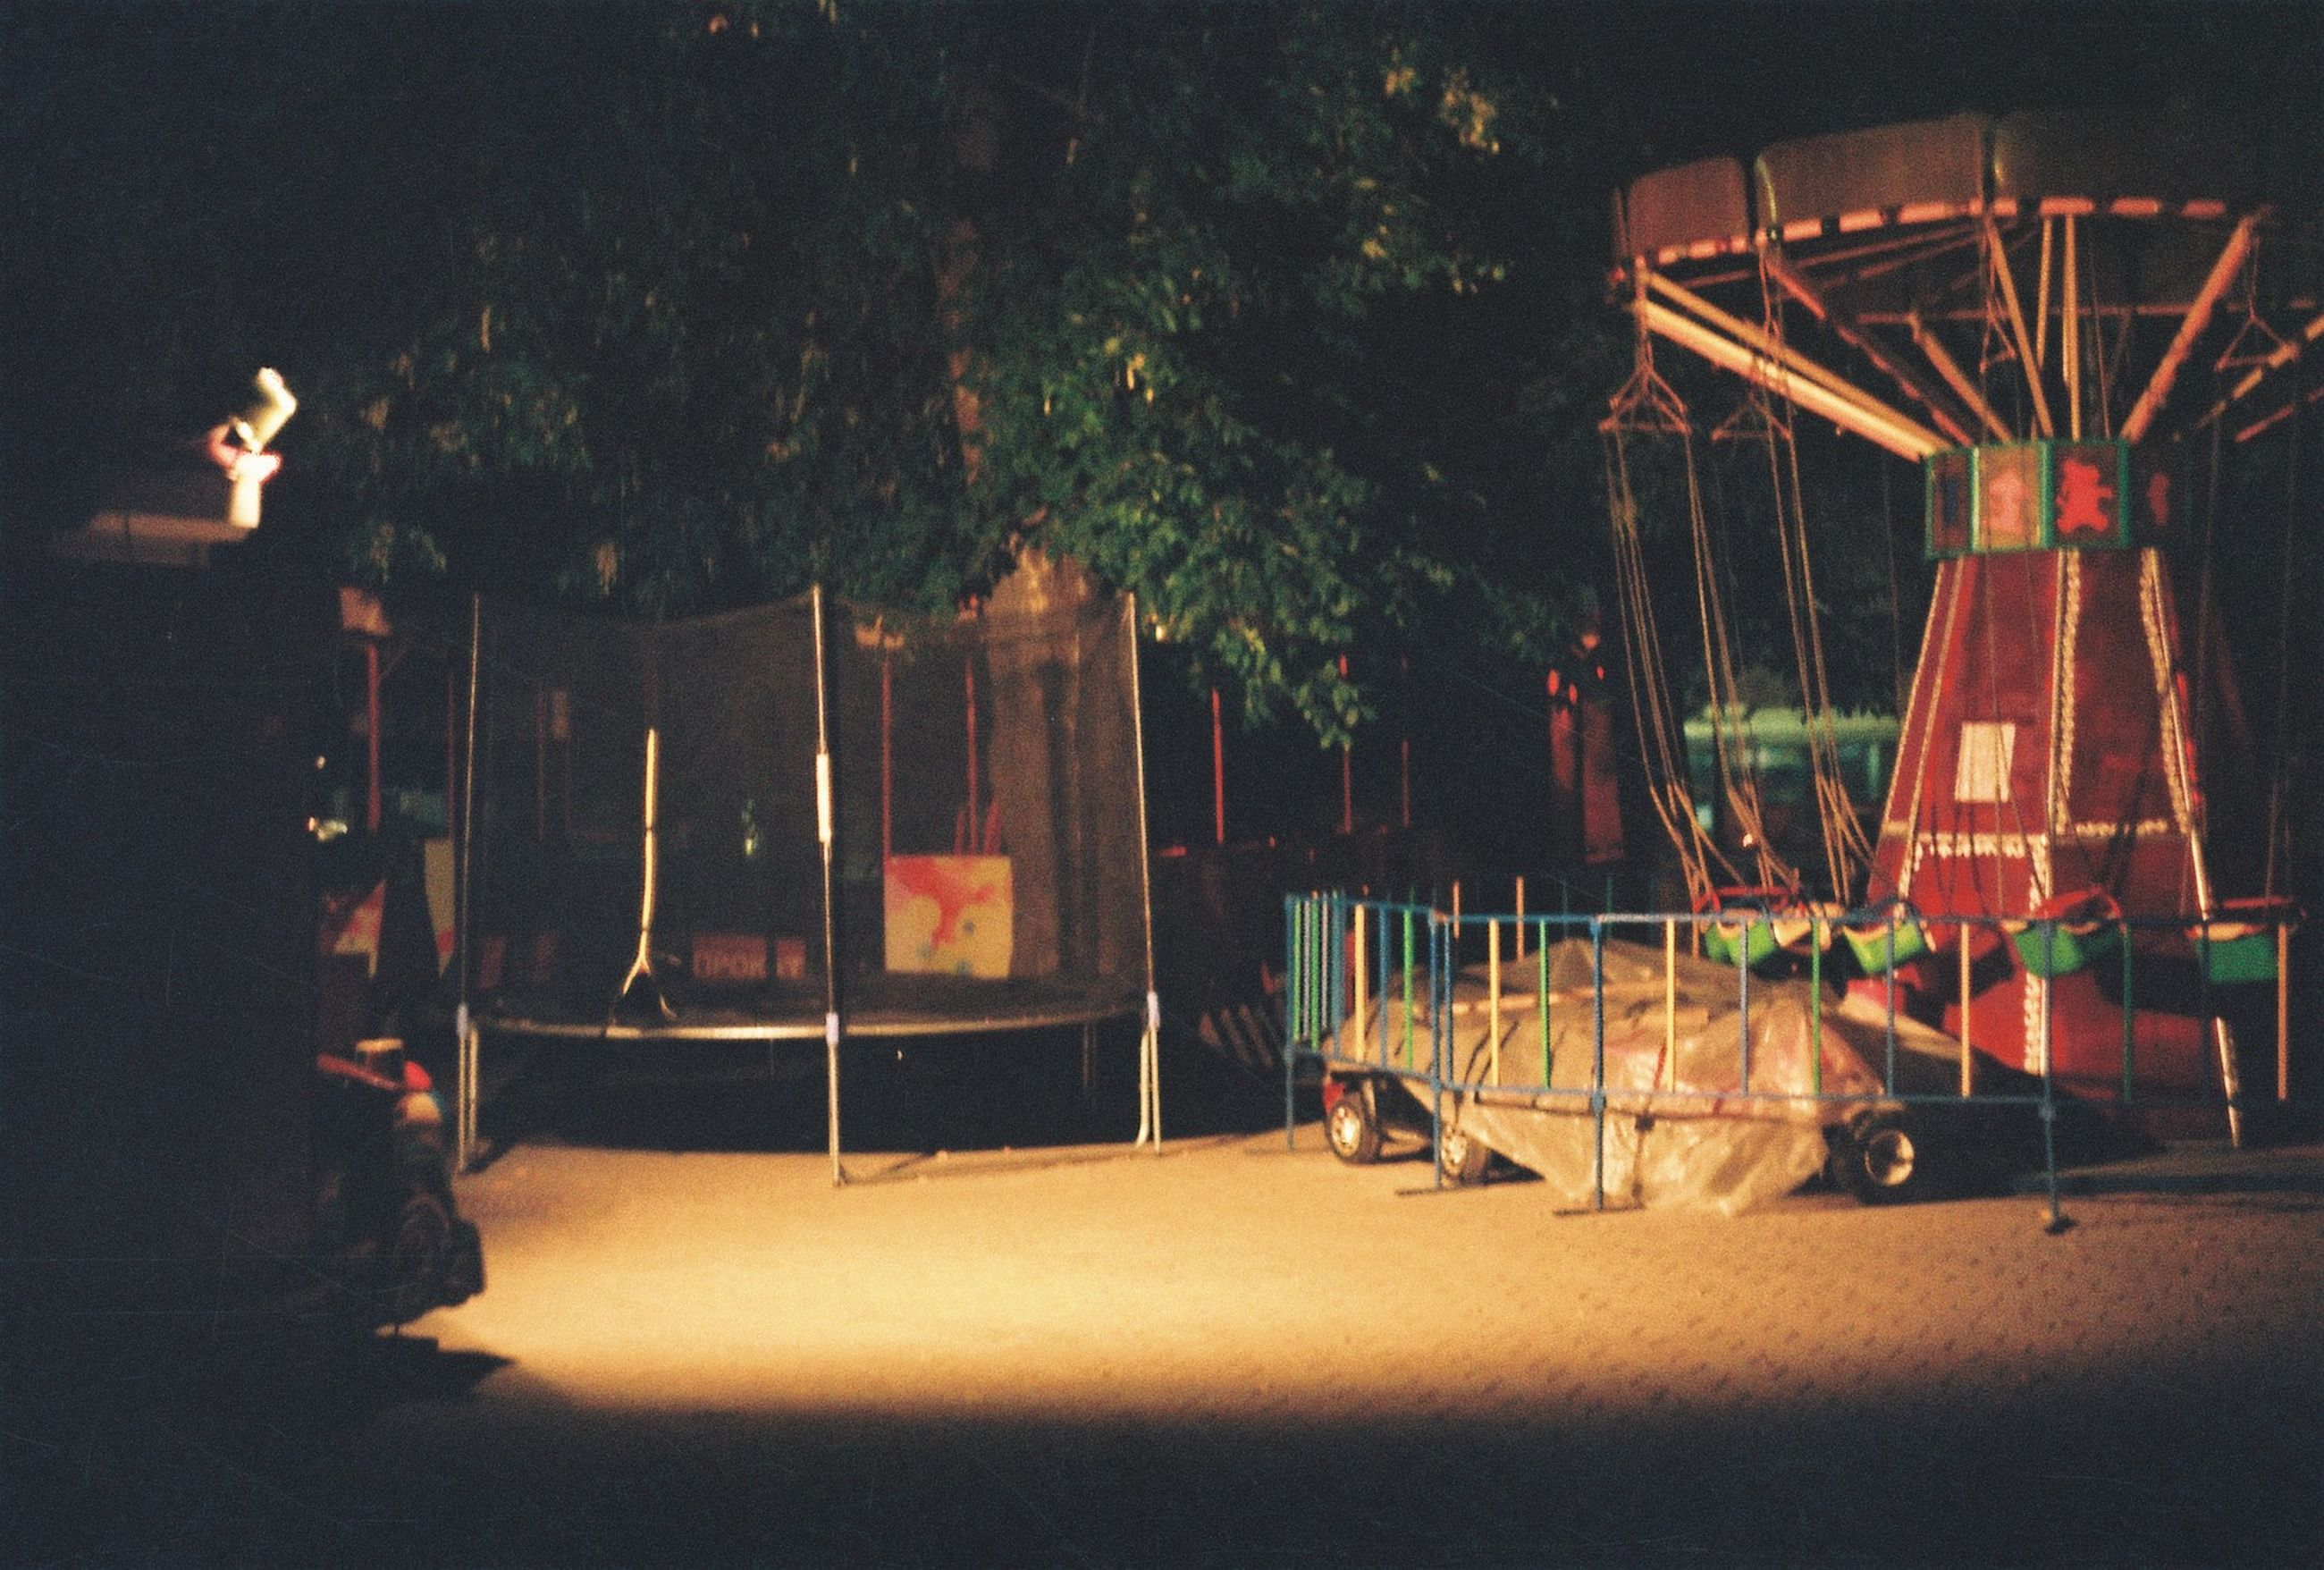 arts culture and entertainment, absence, tree, no people, amusement park ride, nature, amusement park, architecture, night, outdoors, plant, empty, illuminated, playground, built structure, chair, seat, fun, enjoyment, park